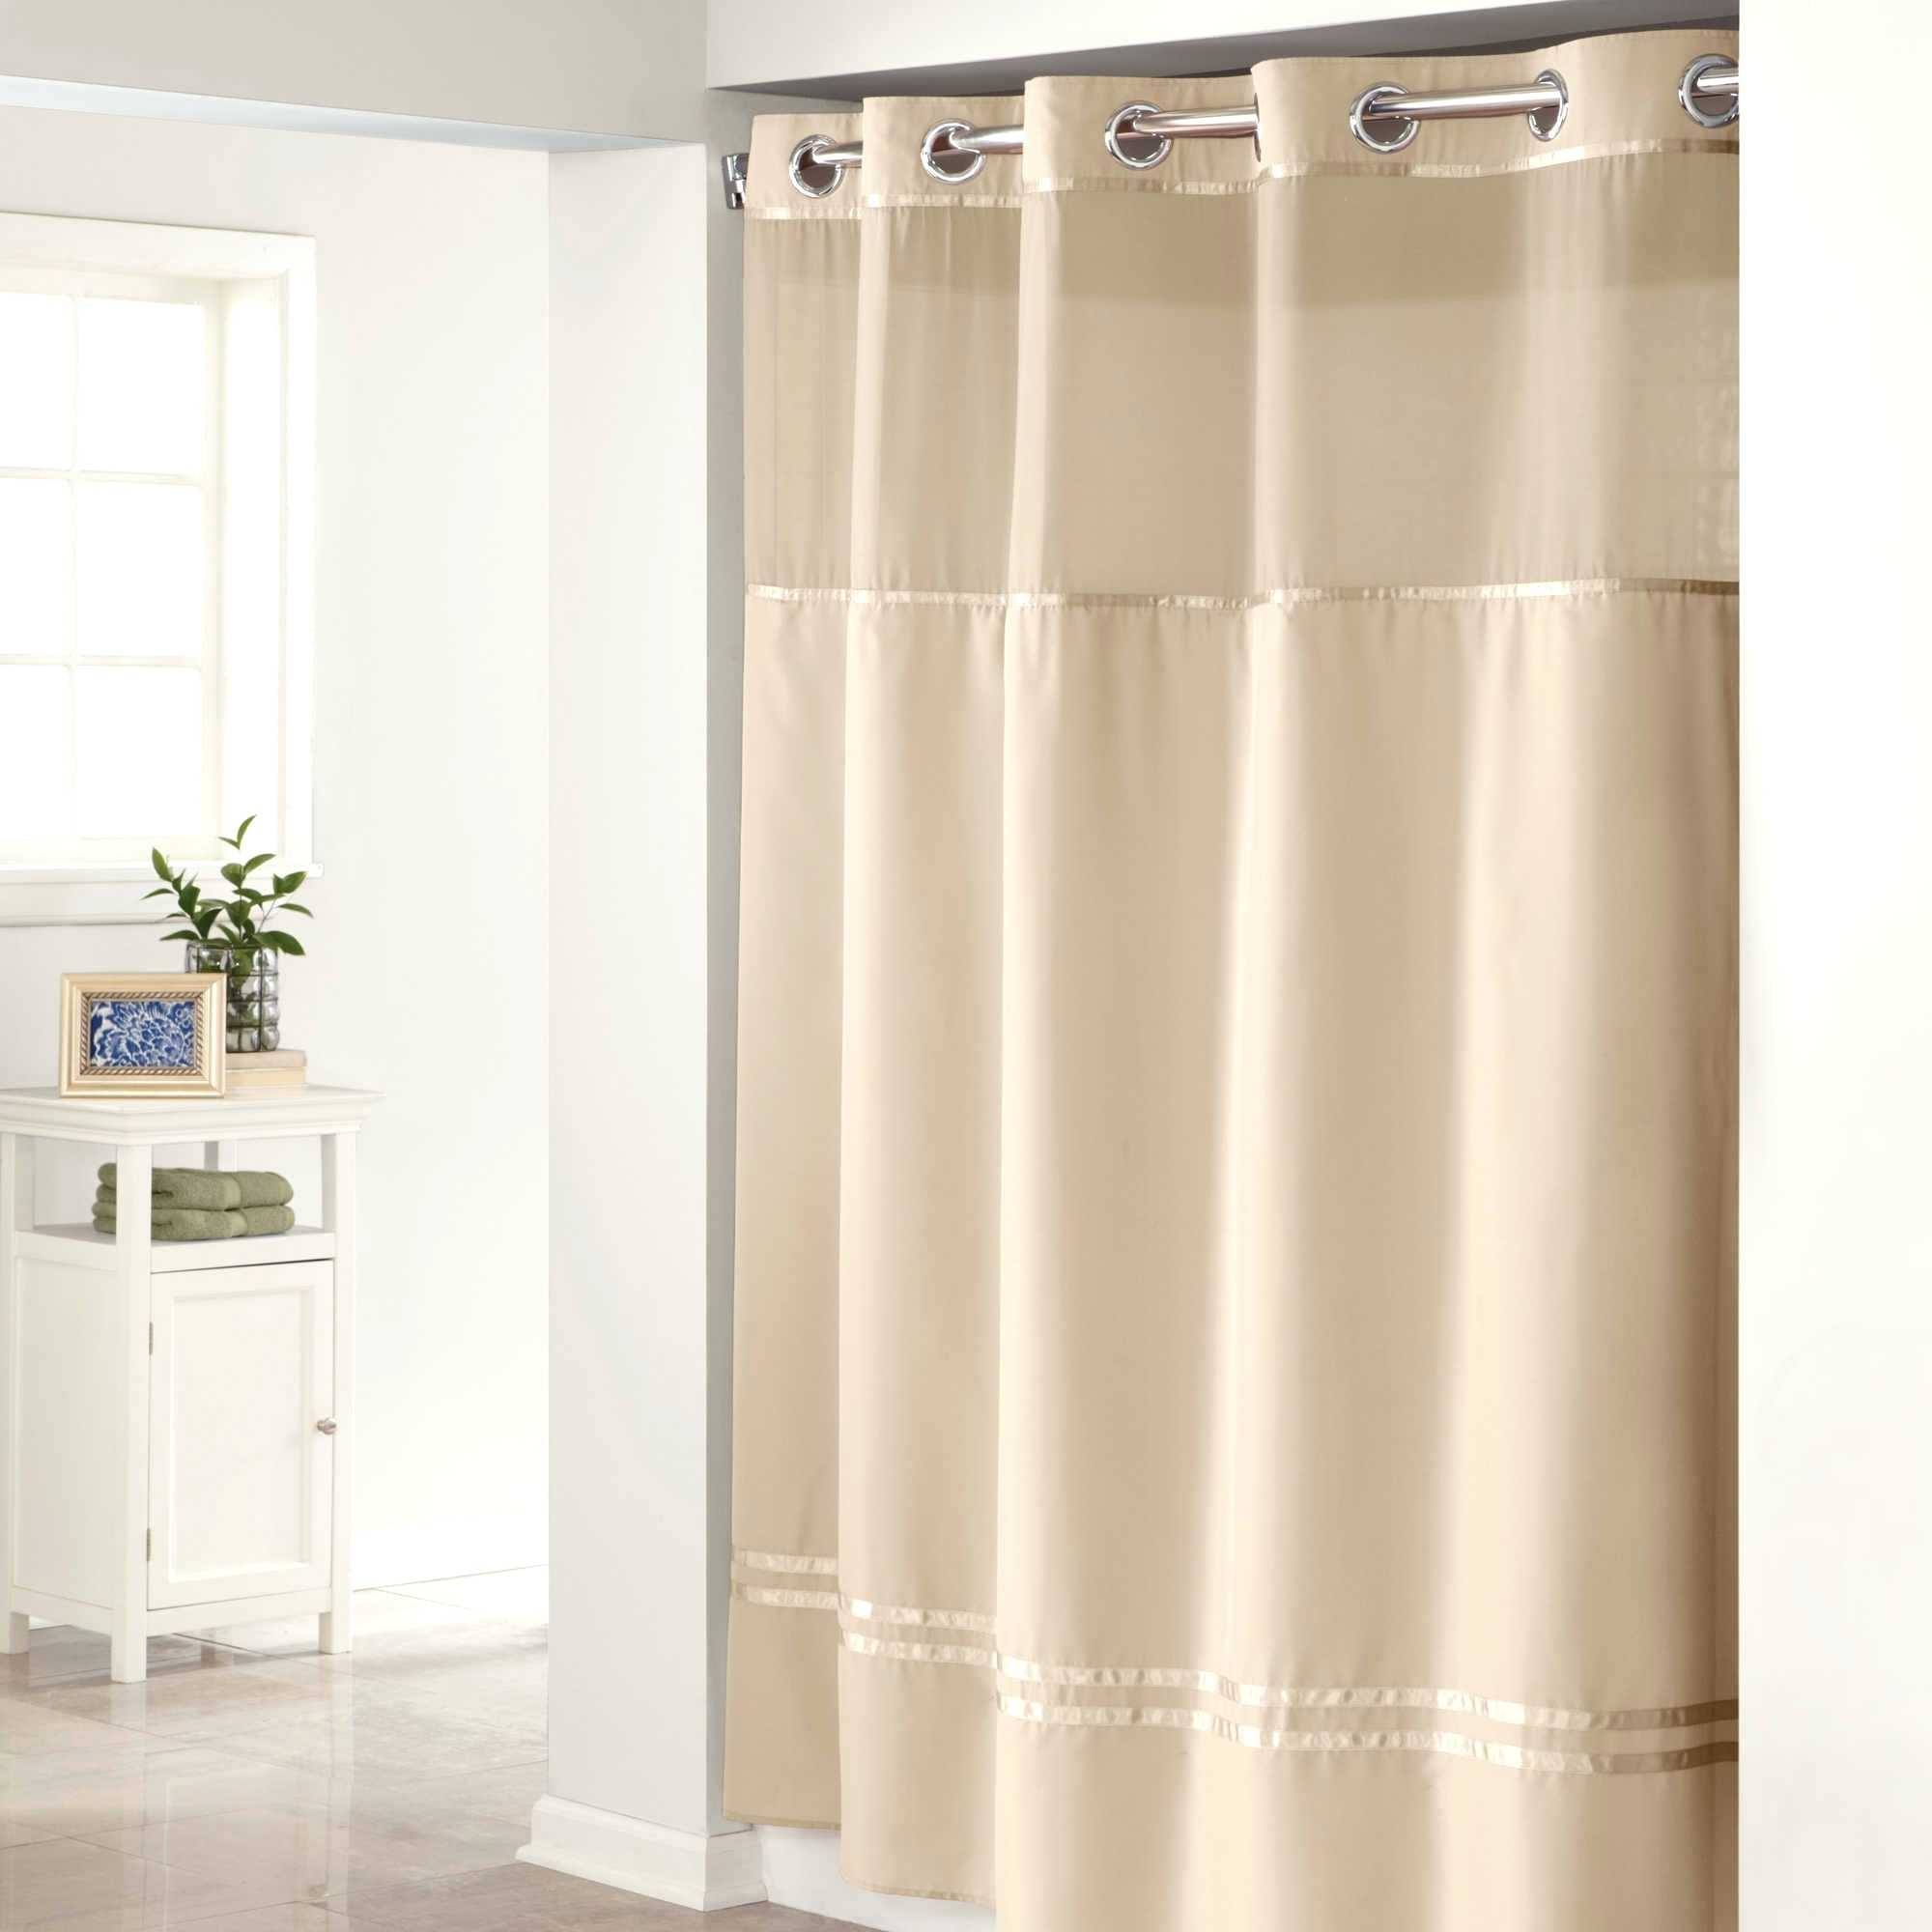 84 Inch Hookless Shower Curtain Curtains Decoration Pertaining To Hookless Fabric Shower Curtain Liner (Image 1 of 25)